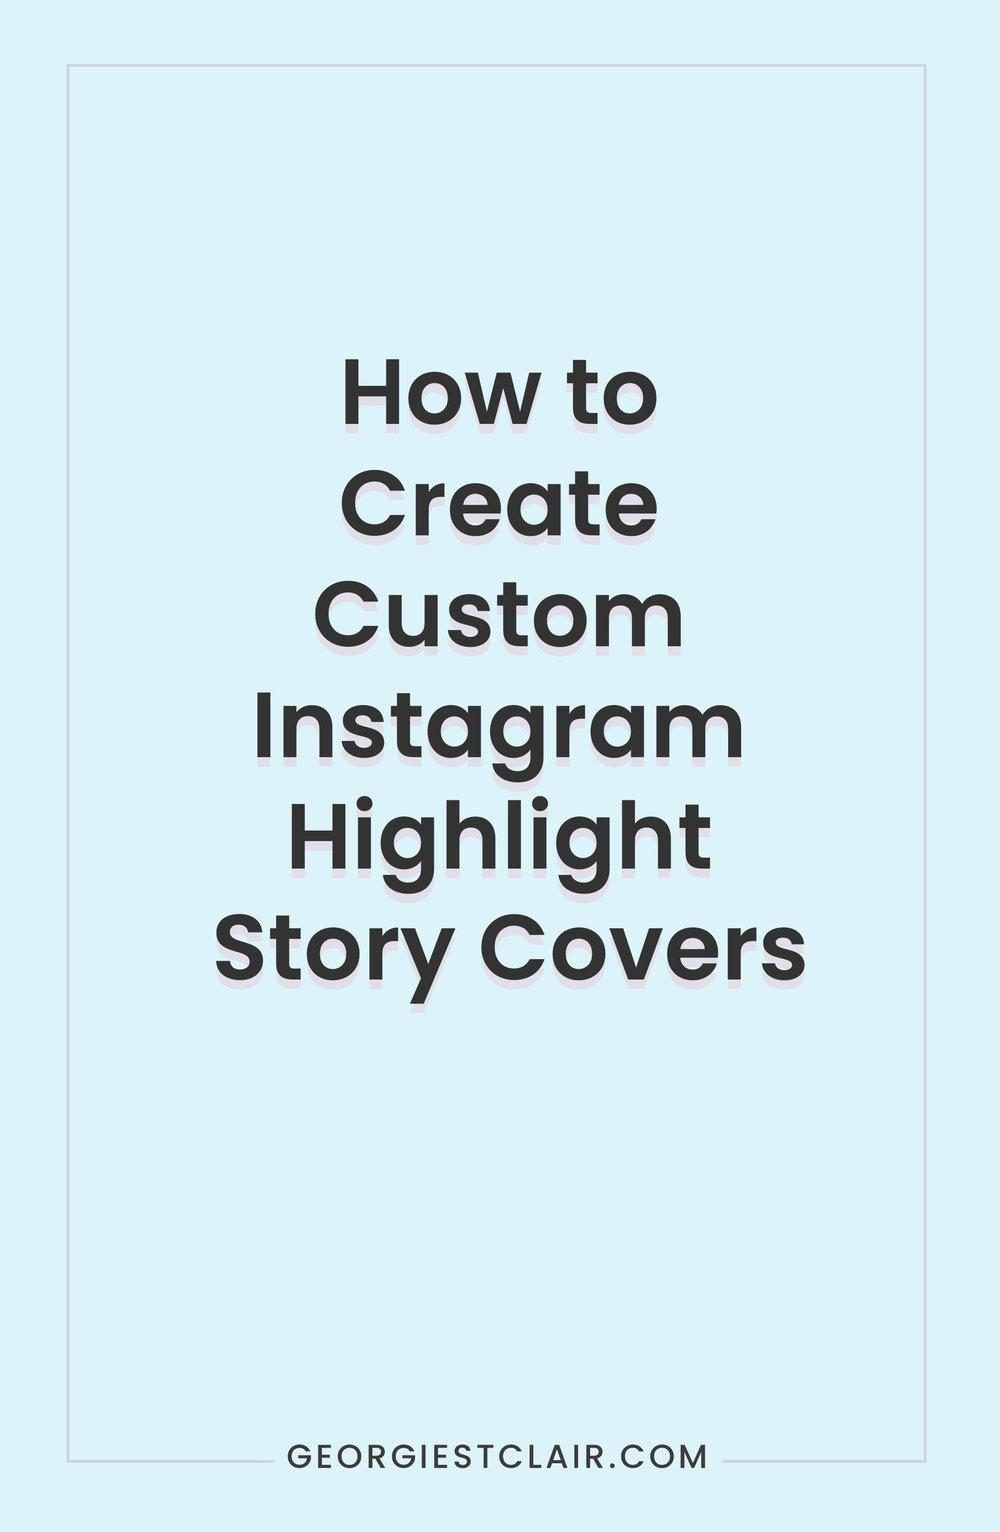 How to Create Custom Instagram Highlight Story Covers